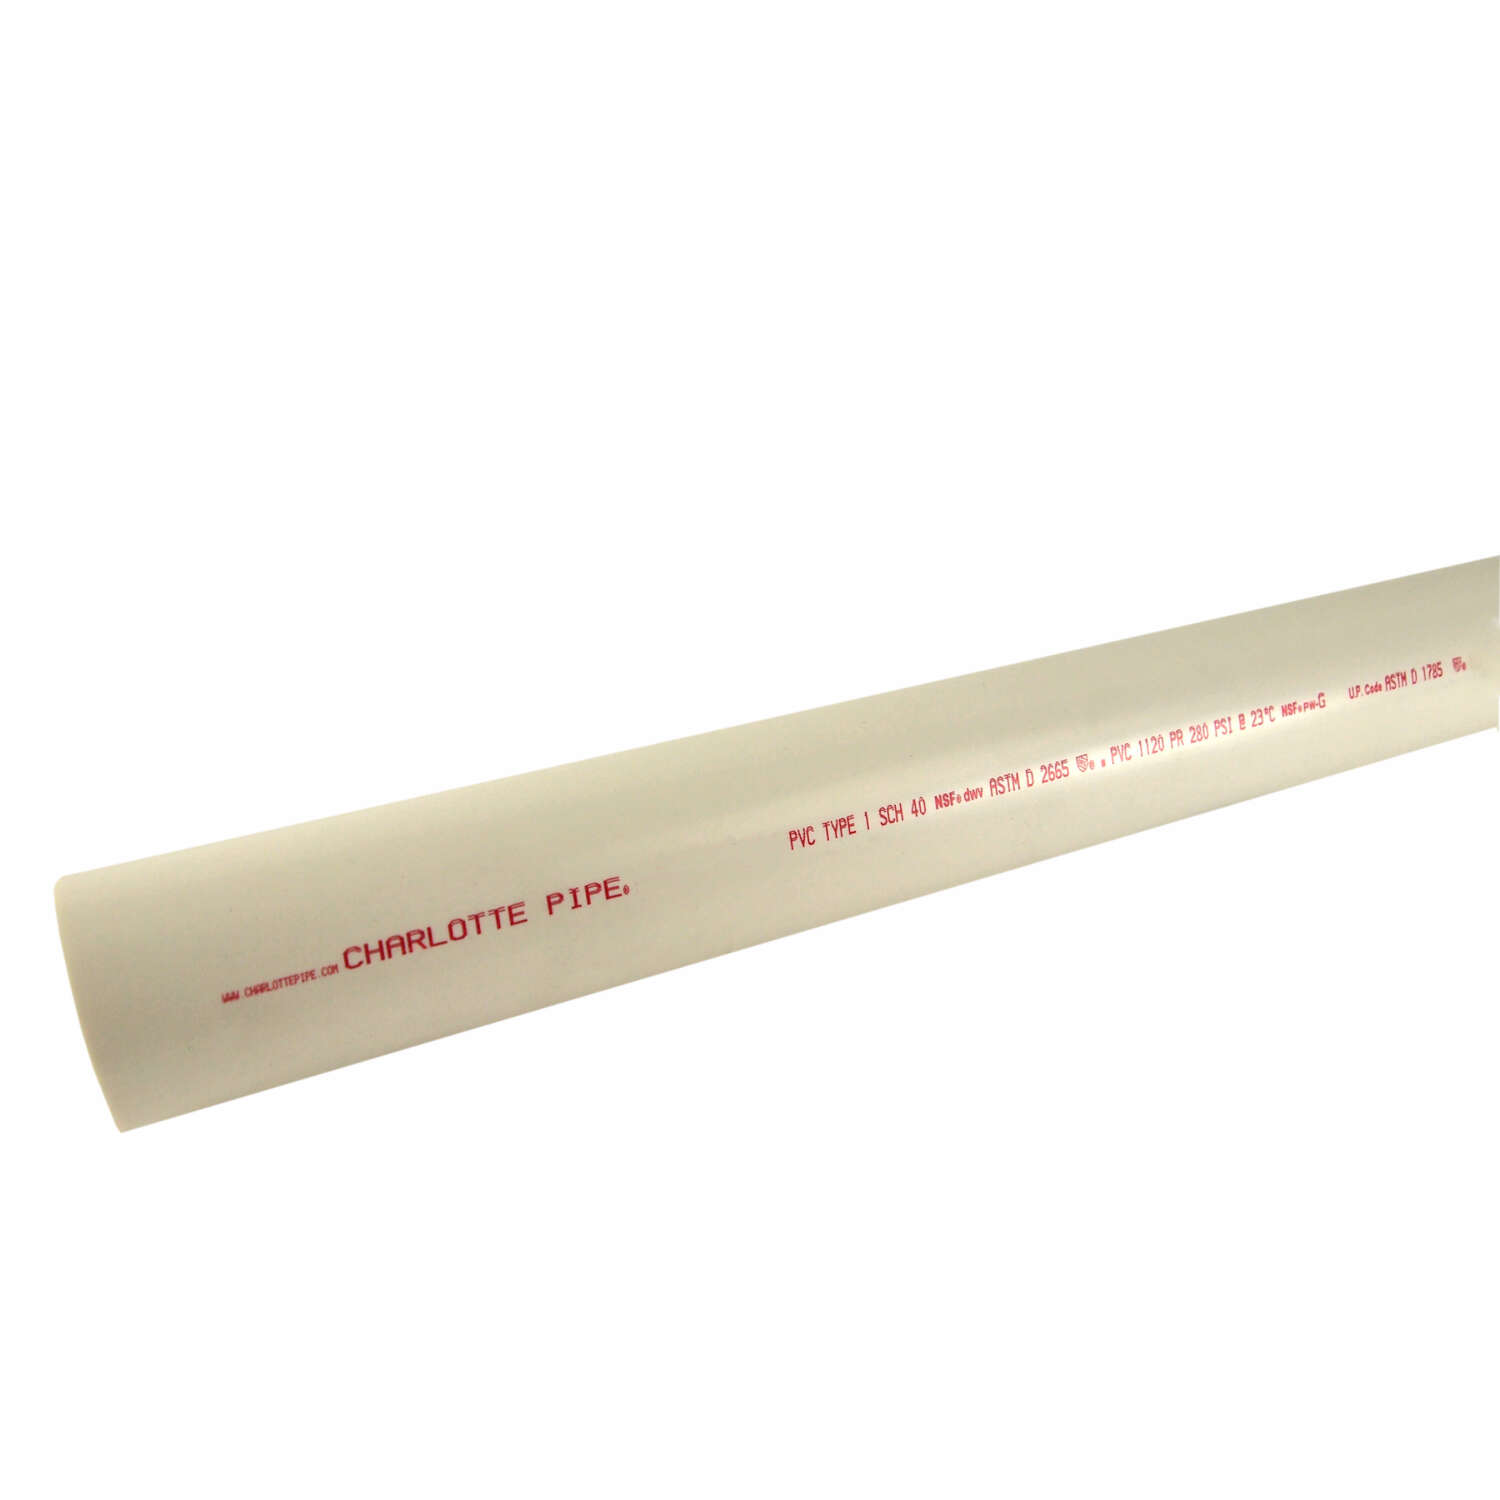 Charlotte Pipe  Schedule 40  PVC  Dual Rated Pipe  4 in. Dia. x 20 ft. L Plain End  220 psi